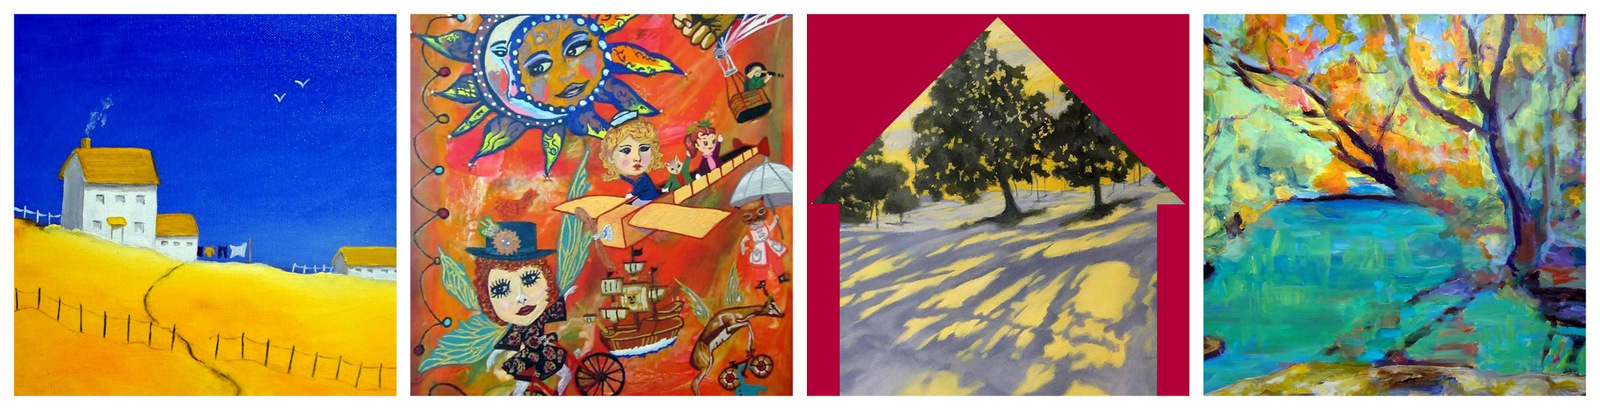 Details from the artwork of: ANN WHISENANT, MICHELE HAMILTON, ANNE BEVAN and BARBARA FROHMADER